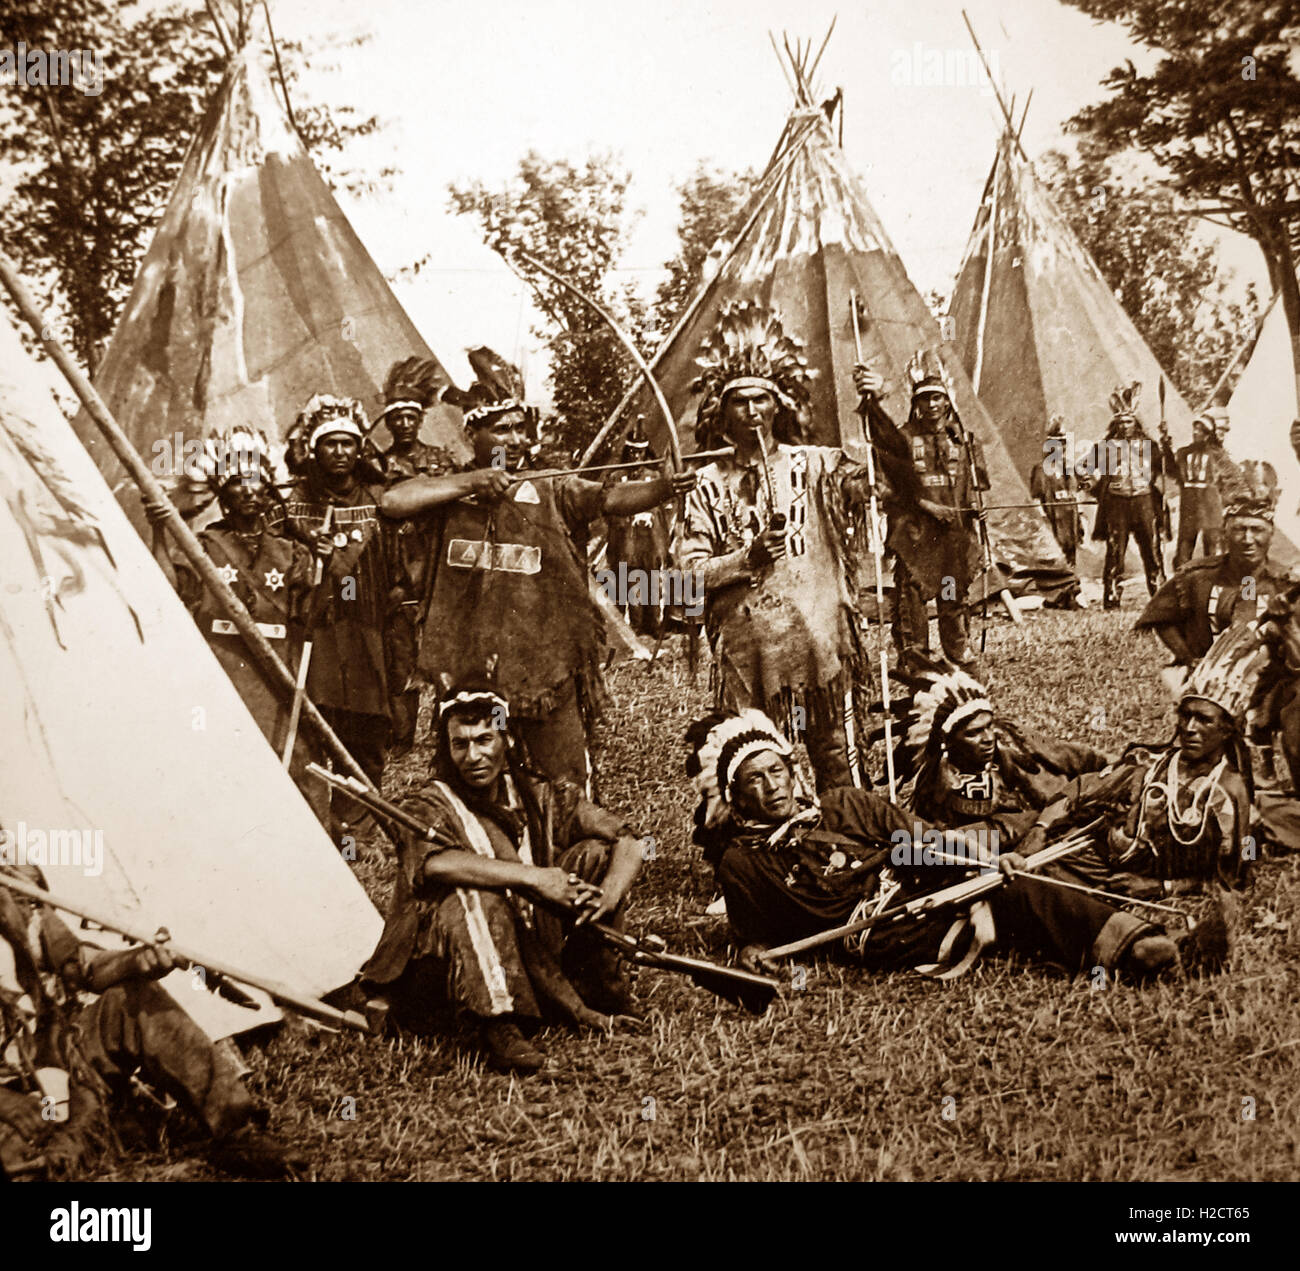 Iroquois High Resolution Stock Photography And Images